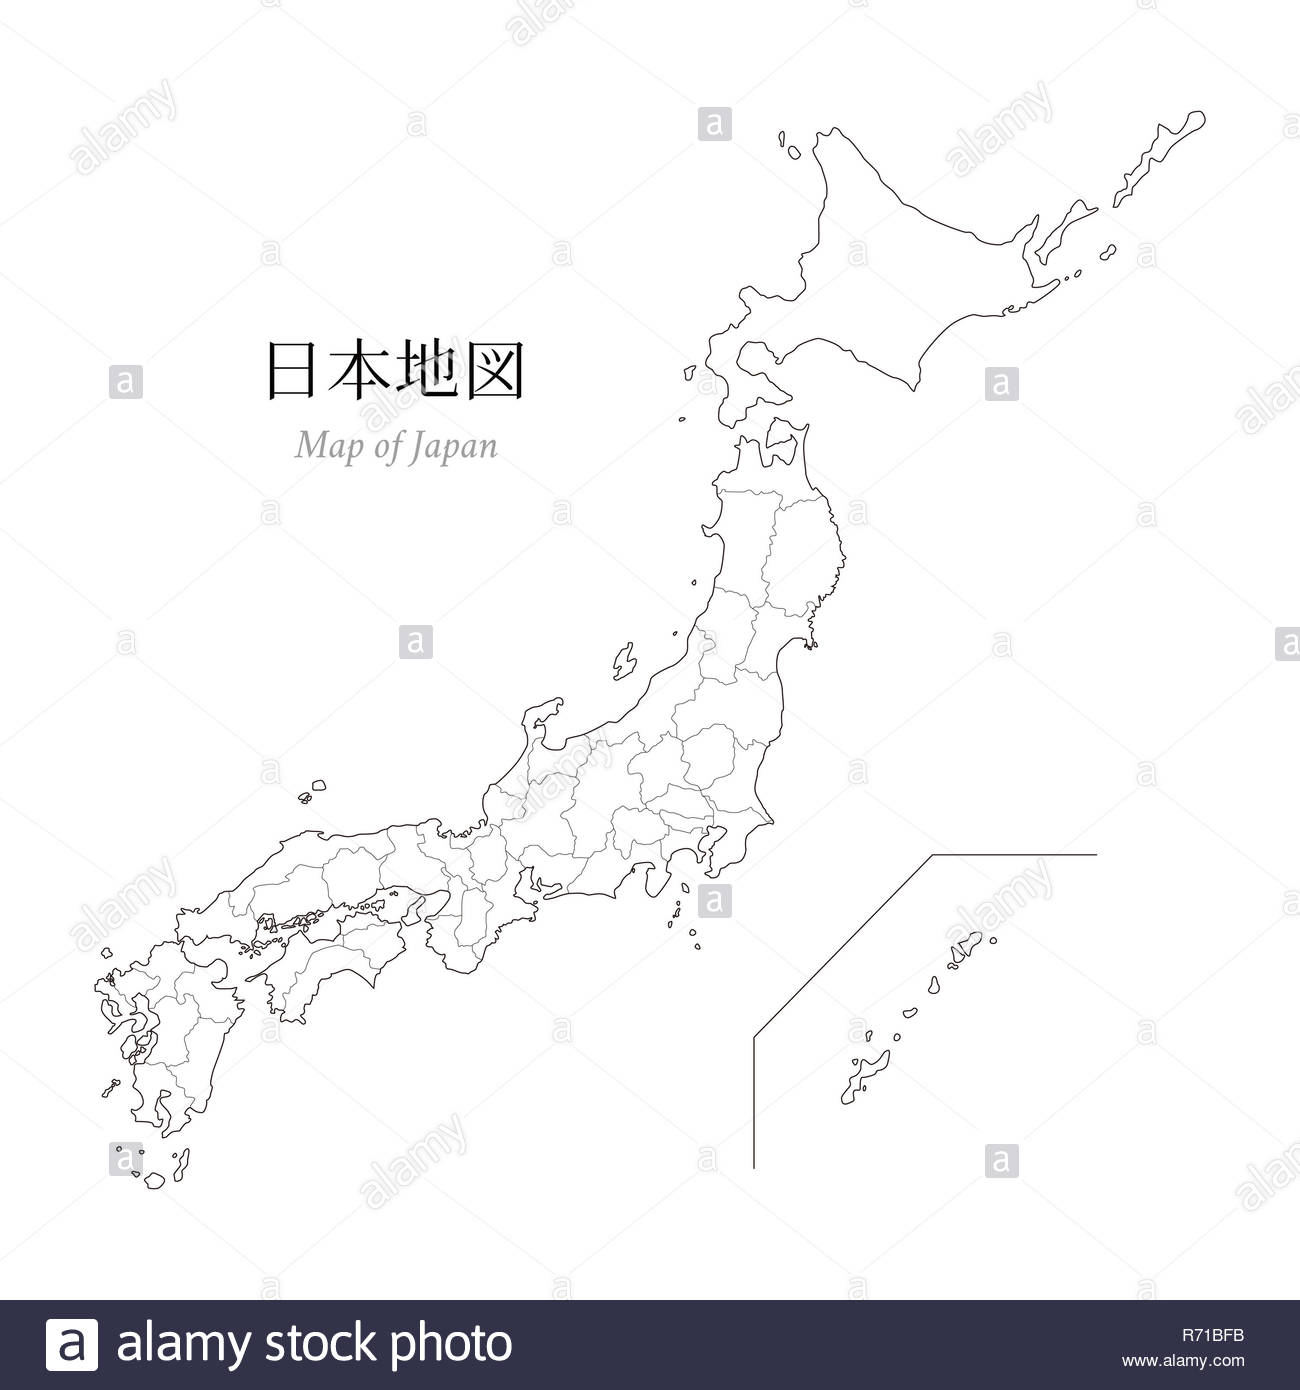 Map of Japan, a blank map, an outline map Stock Photo: 228068383 - Alamy